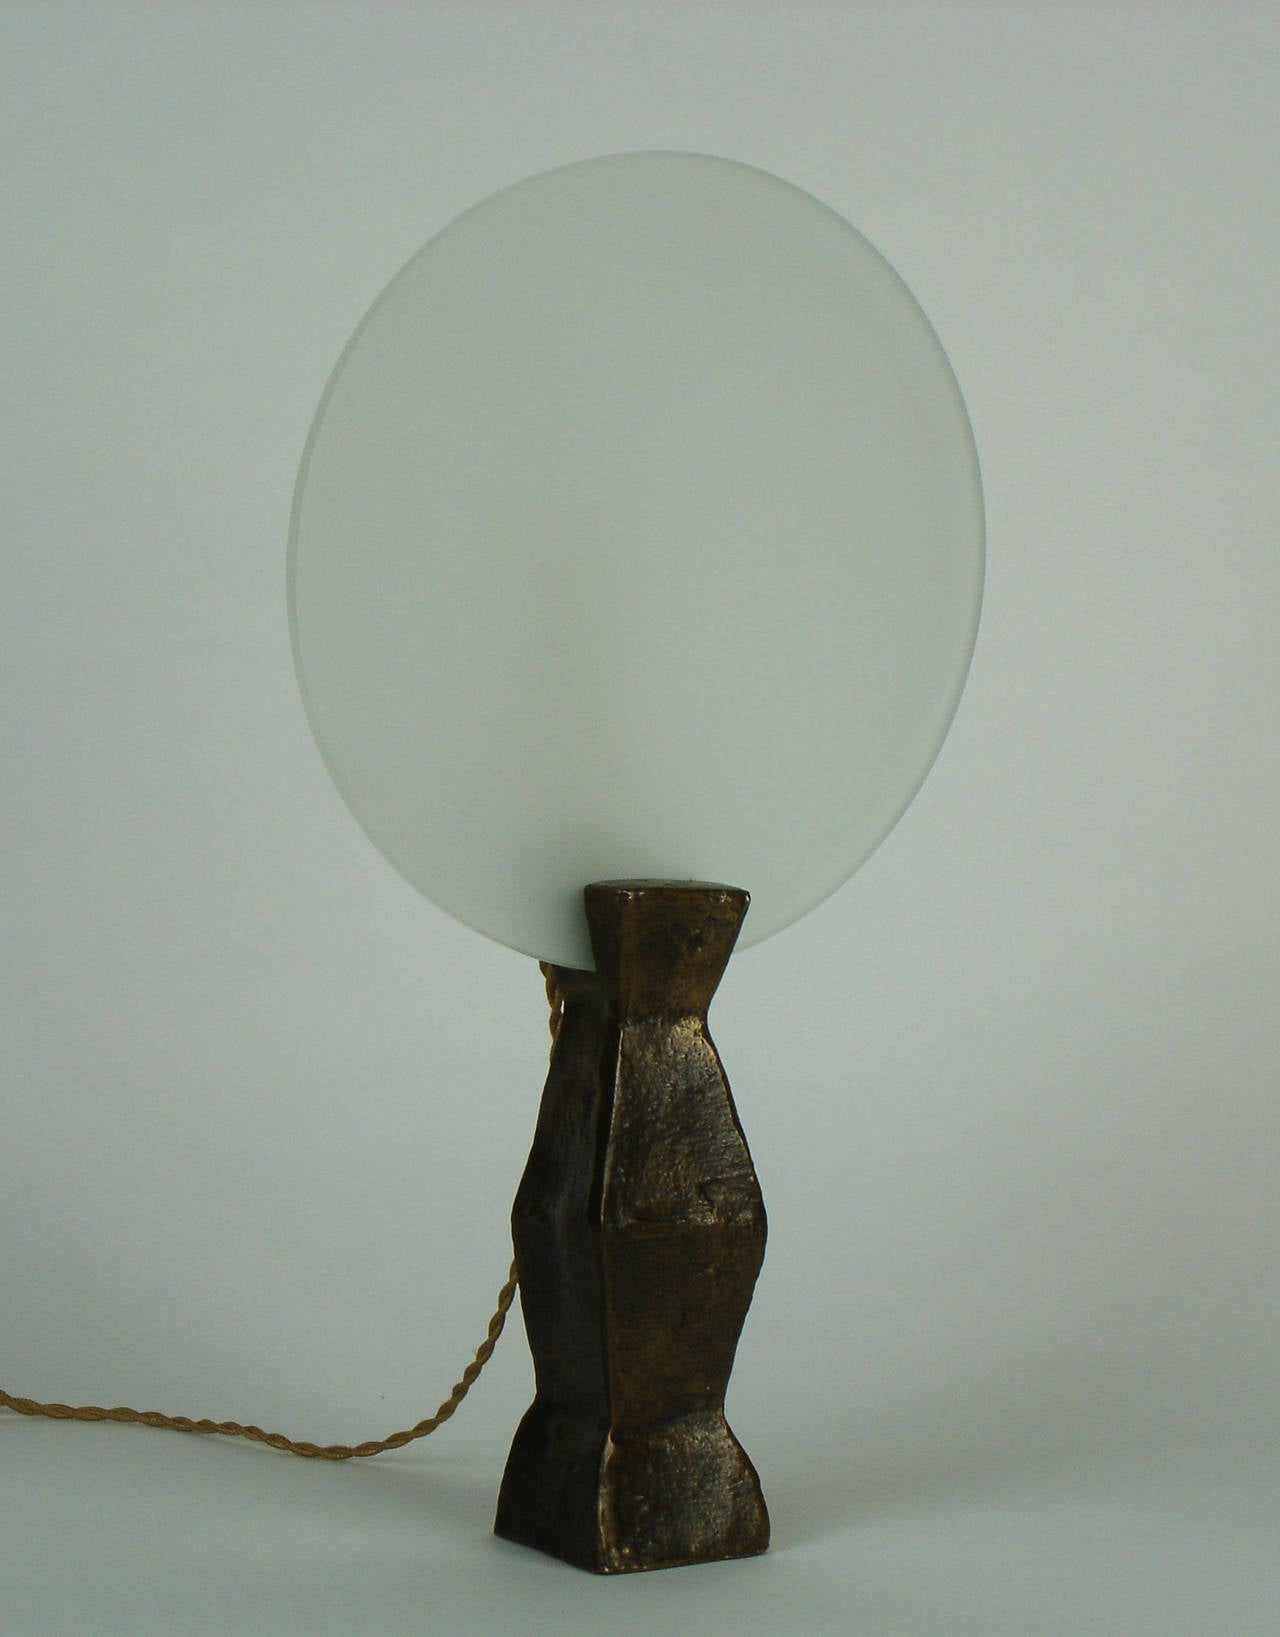 Quot Lune Quot A Garouste And Bonetti Table Lamp At 1stdibs